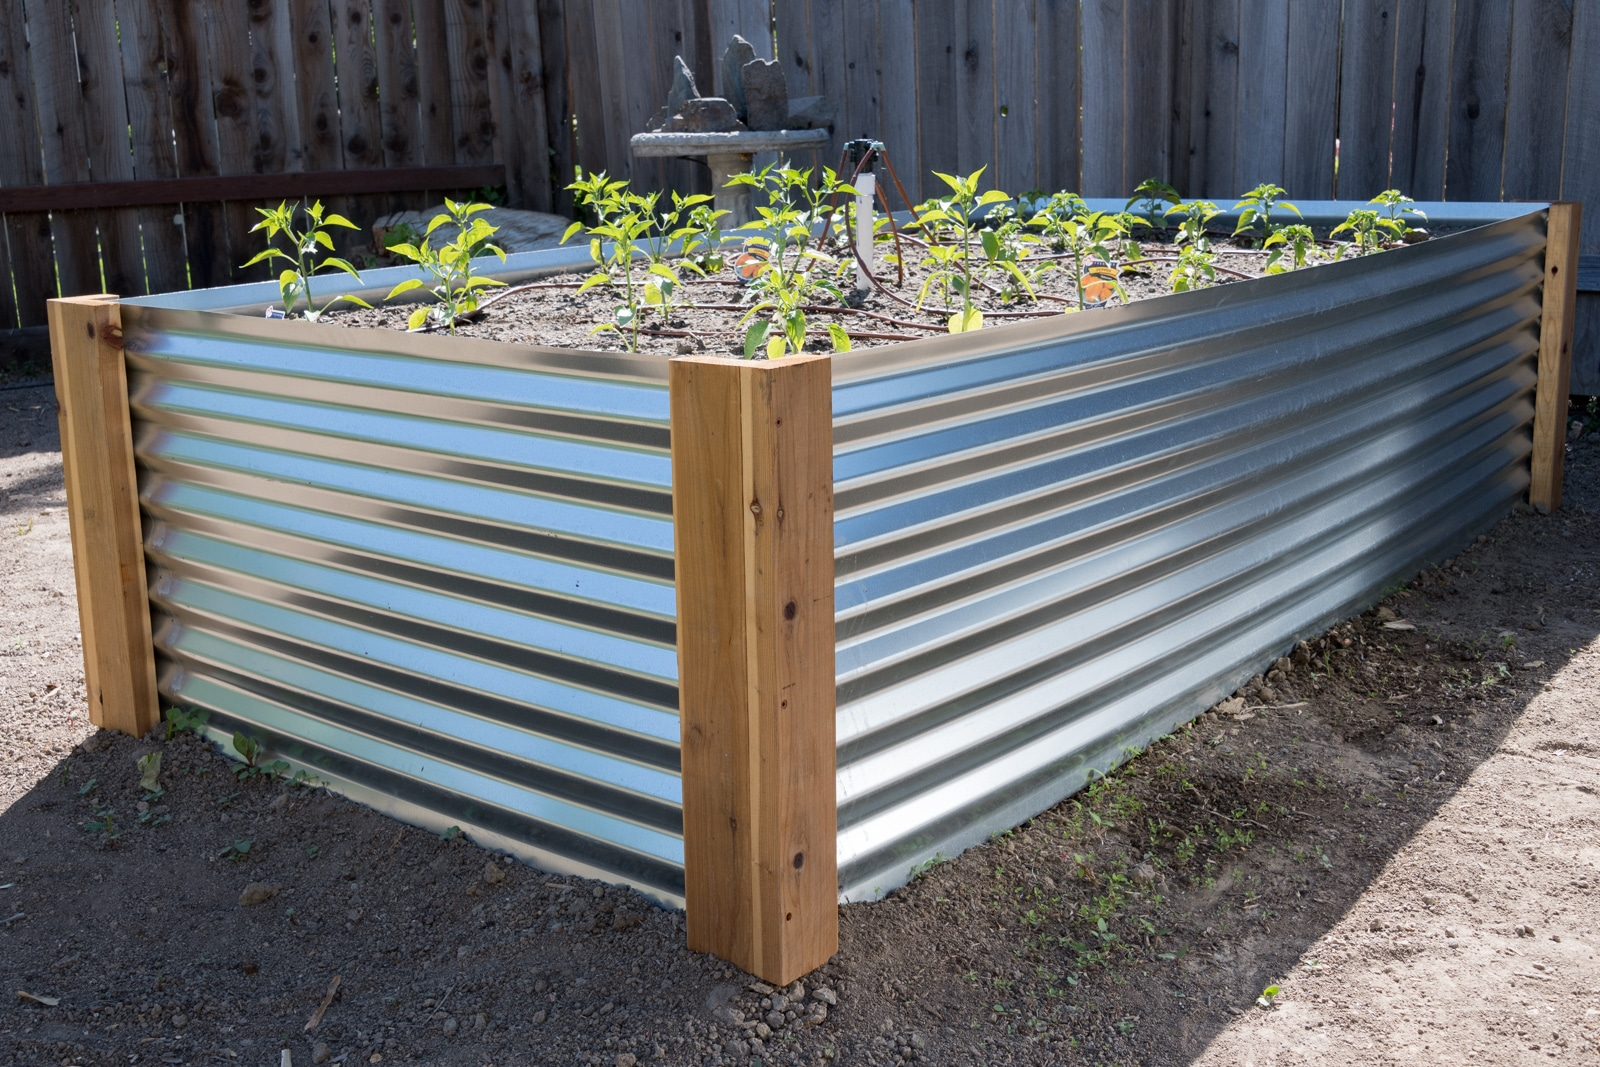 How To Build a Metal Raised Garden Bed – MK Liry Raised Garden Table Designs on raised desk designs, raised garden box designs, raised garden lighting, raised wood designs, raised garden planter designs, raised garden trellis designs, raised garden accessories, raised garden bed designs, raised fireplace designs,